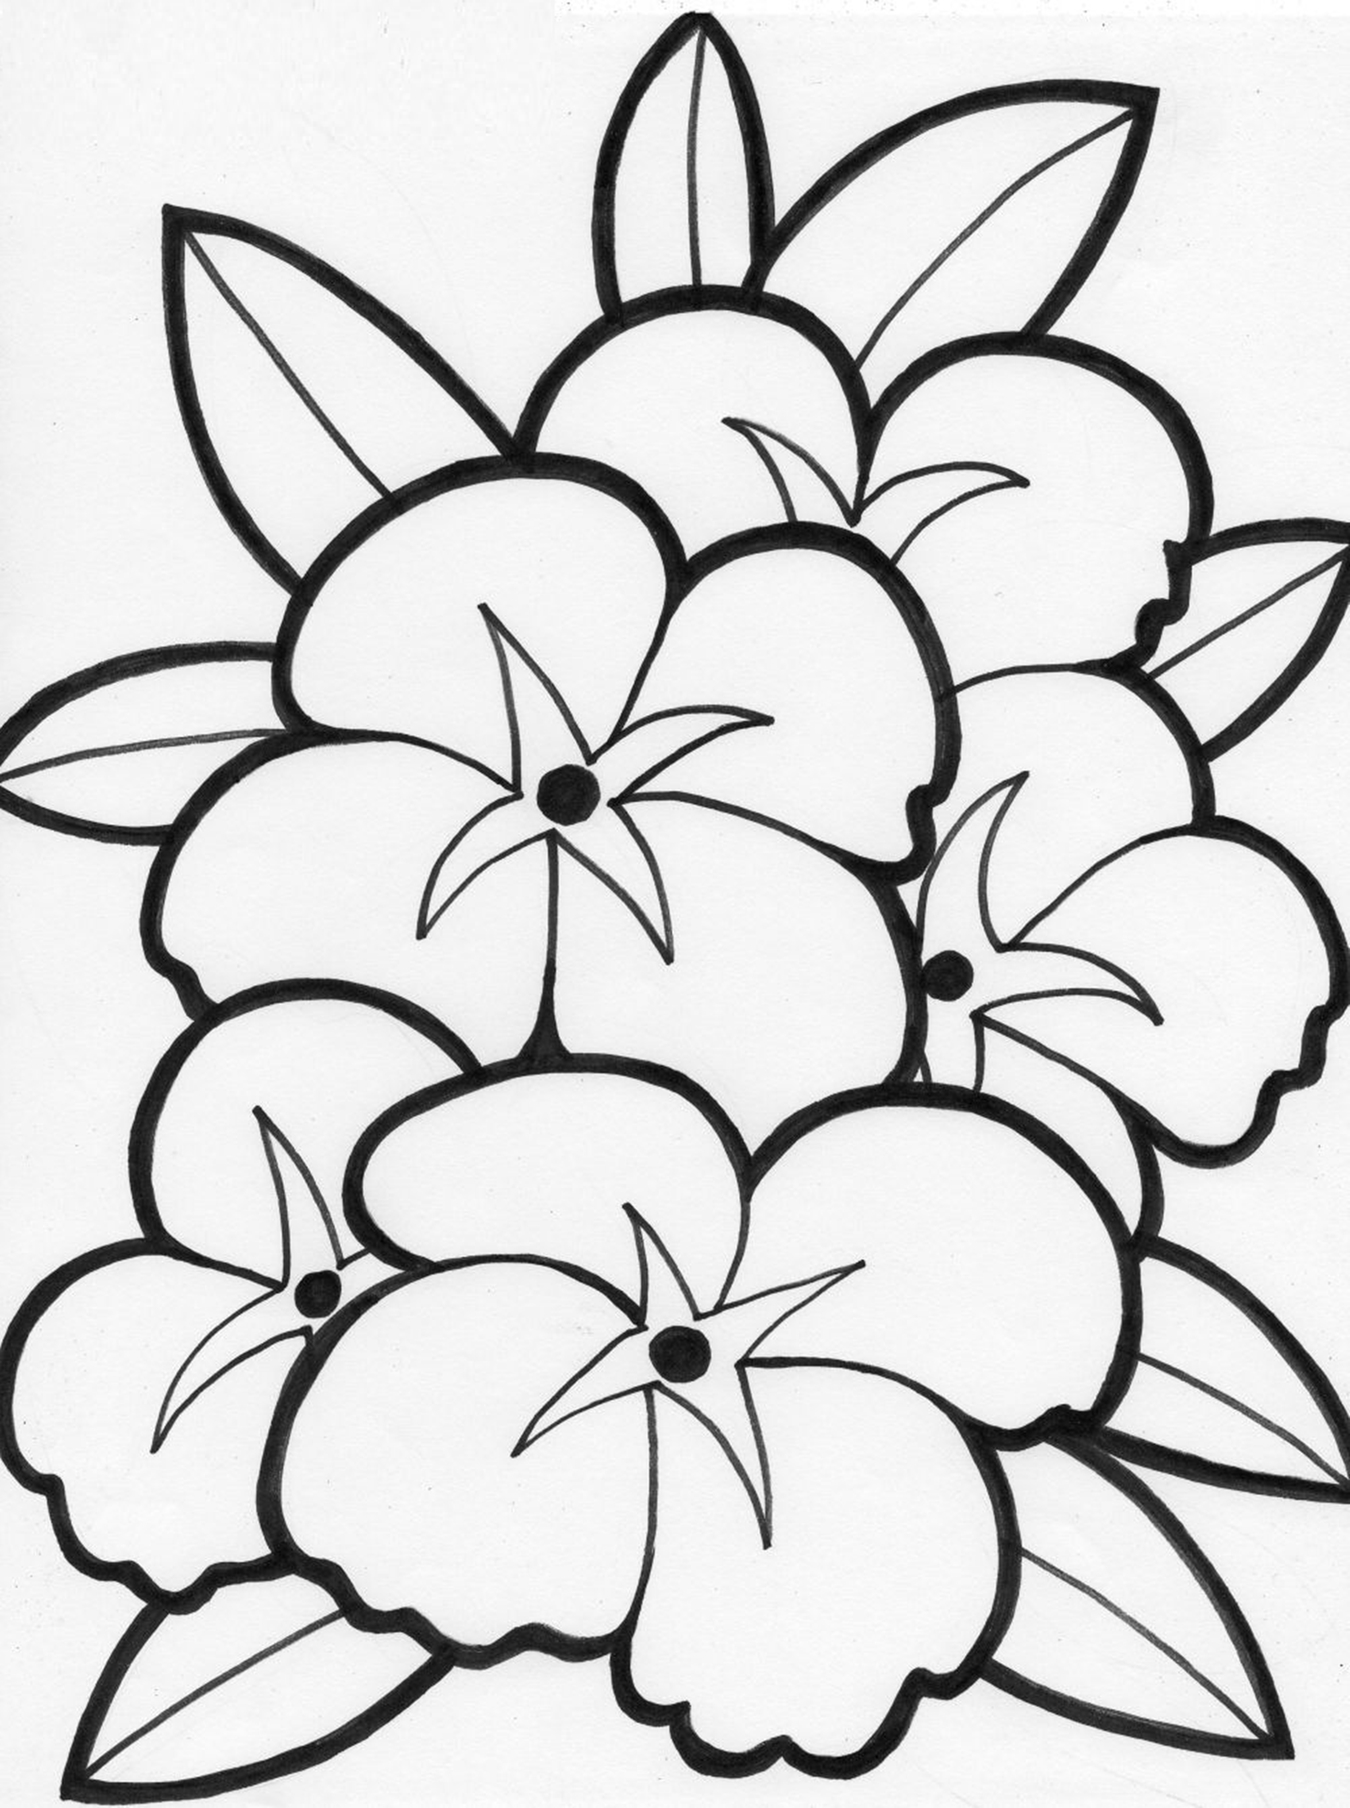 colouring page of flowers vintage flower coloring pages on behance of colouring page flowers